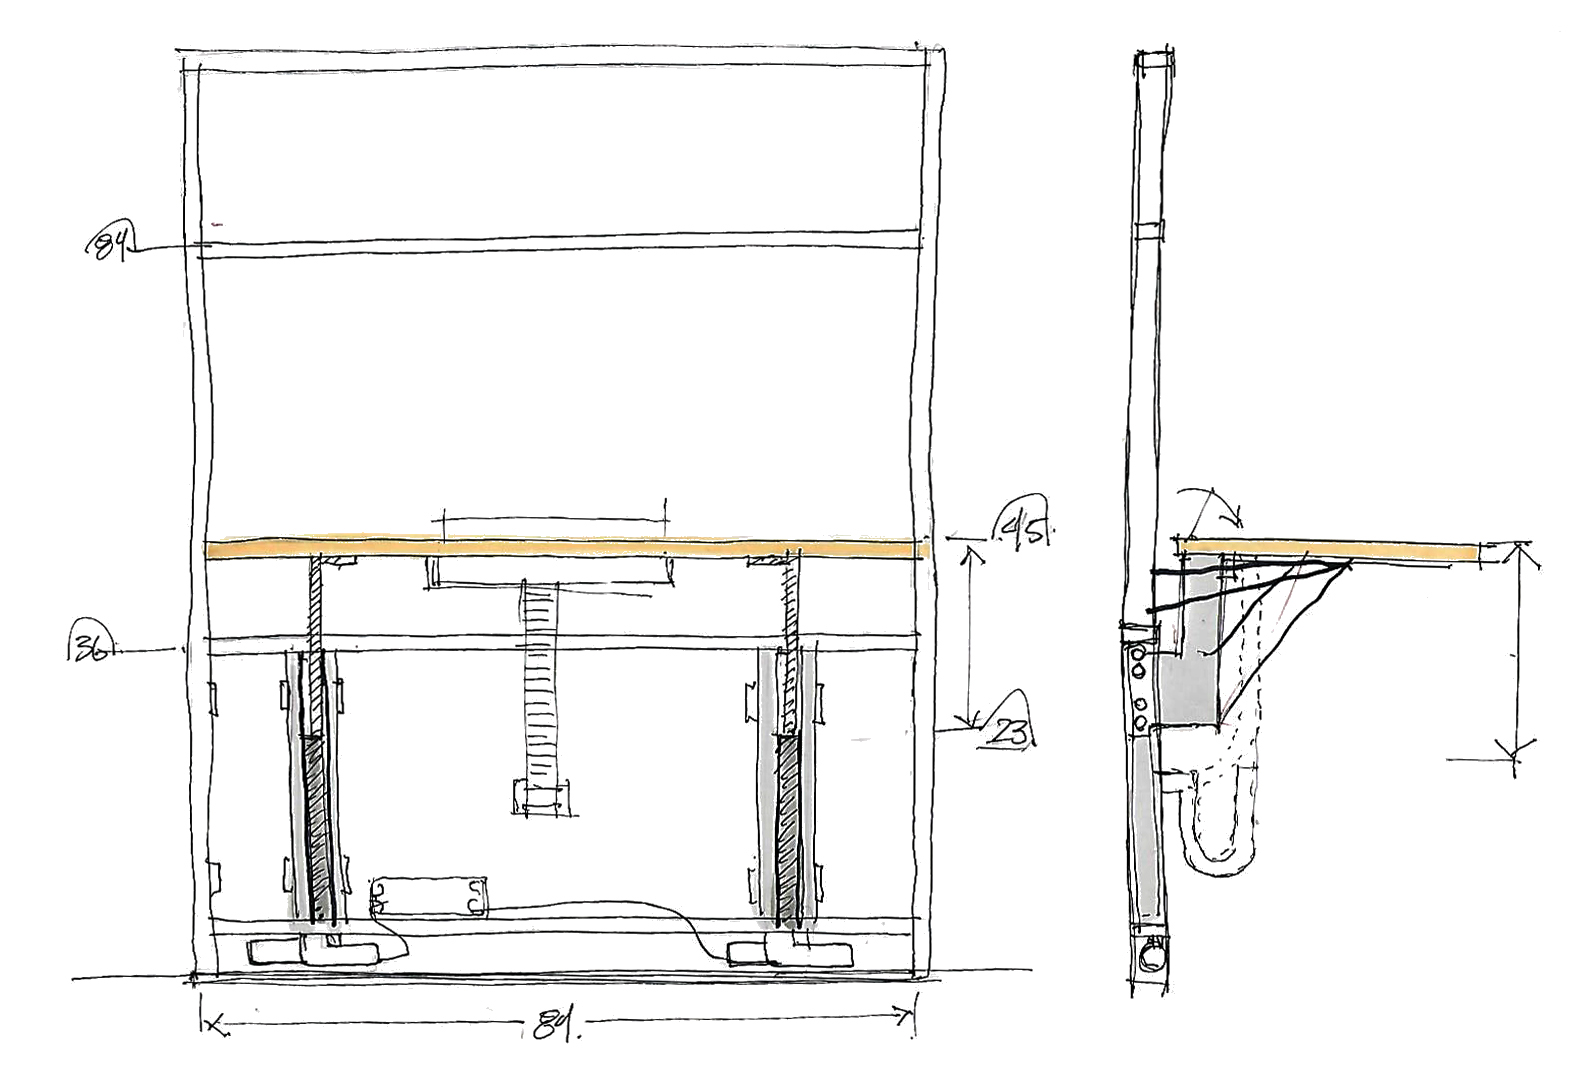 Sketch evaluating sit-stand dimensions.